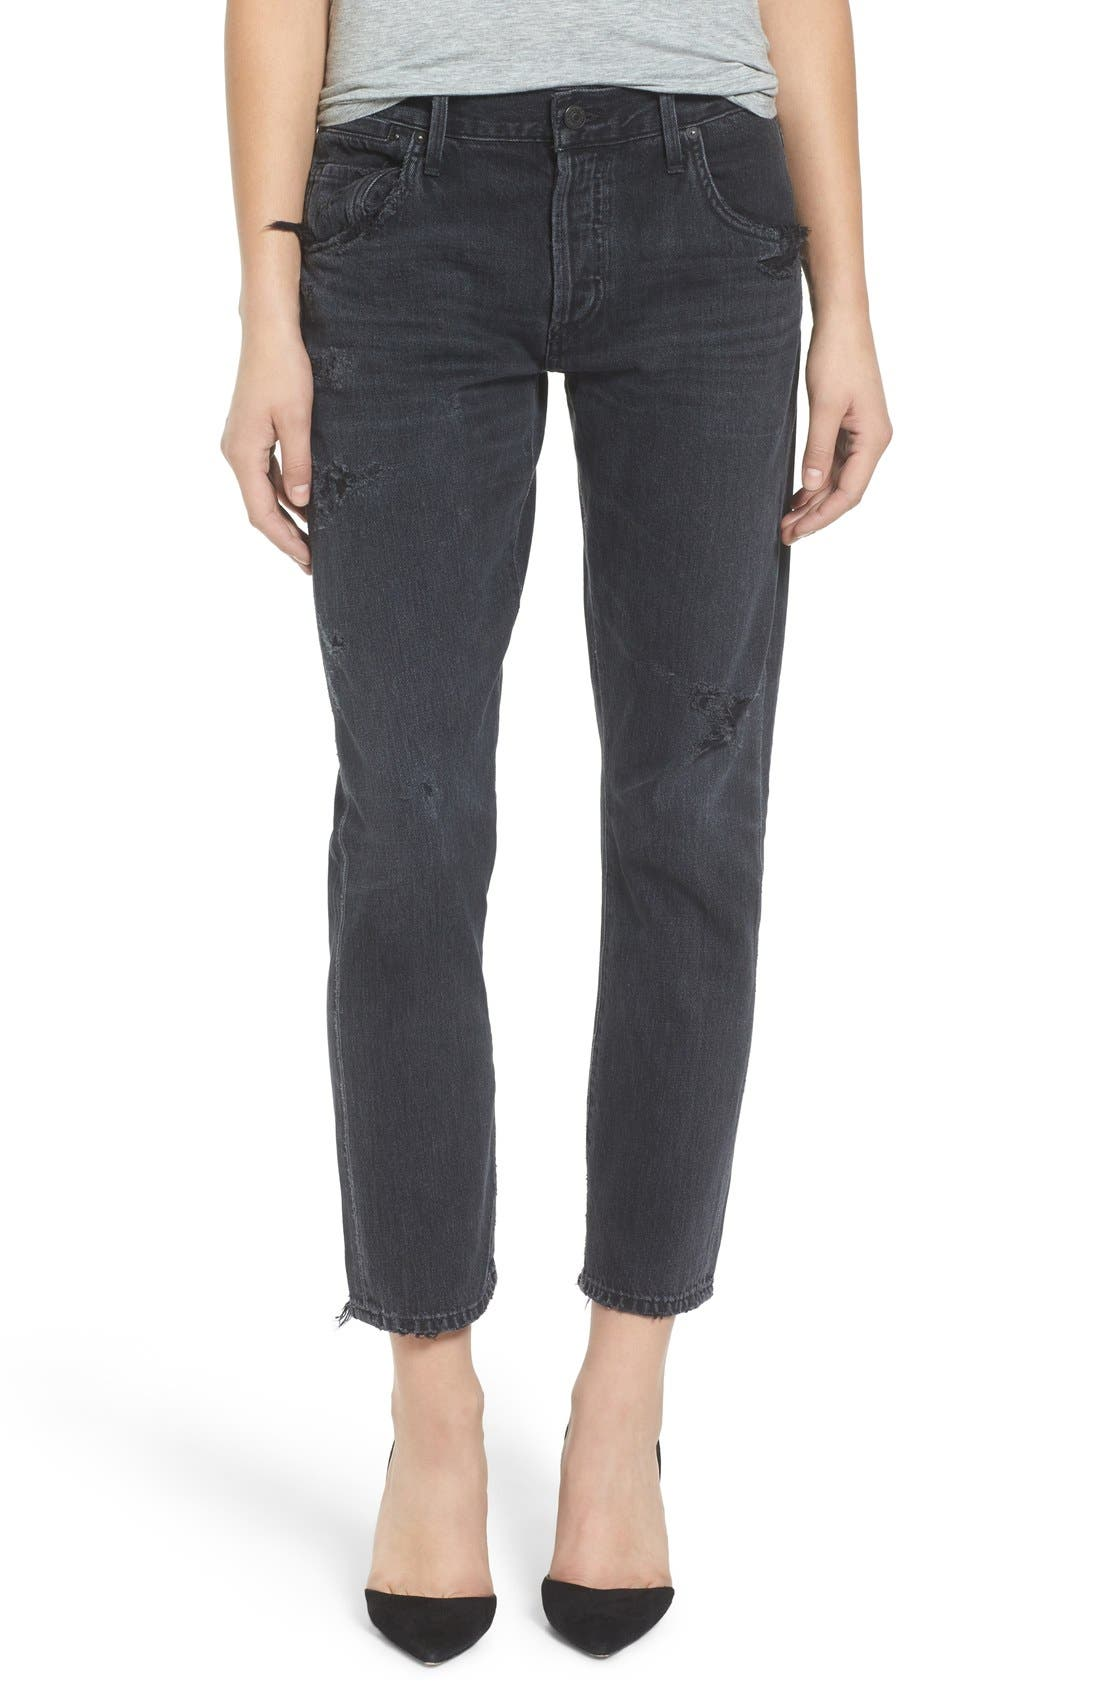 Emerson Slim Boyfriend Jeans,                             Main thumbnail 1, color,                             006